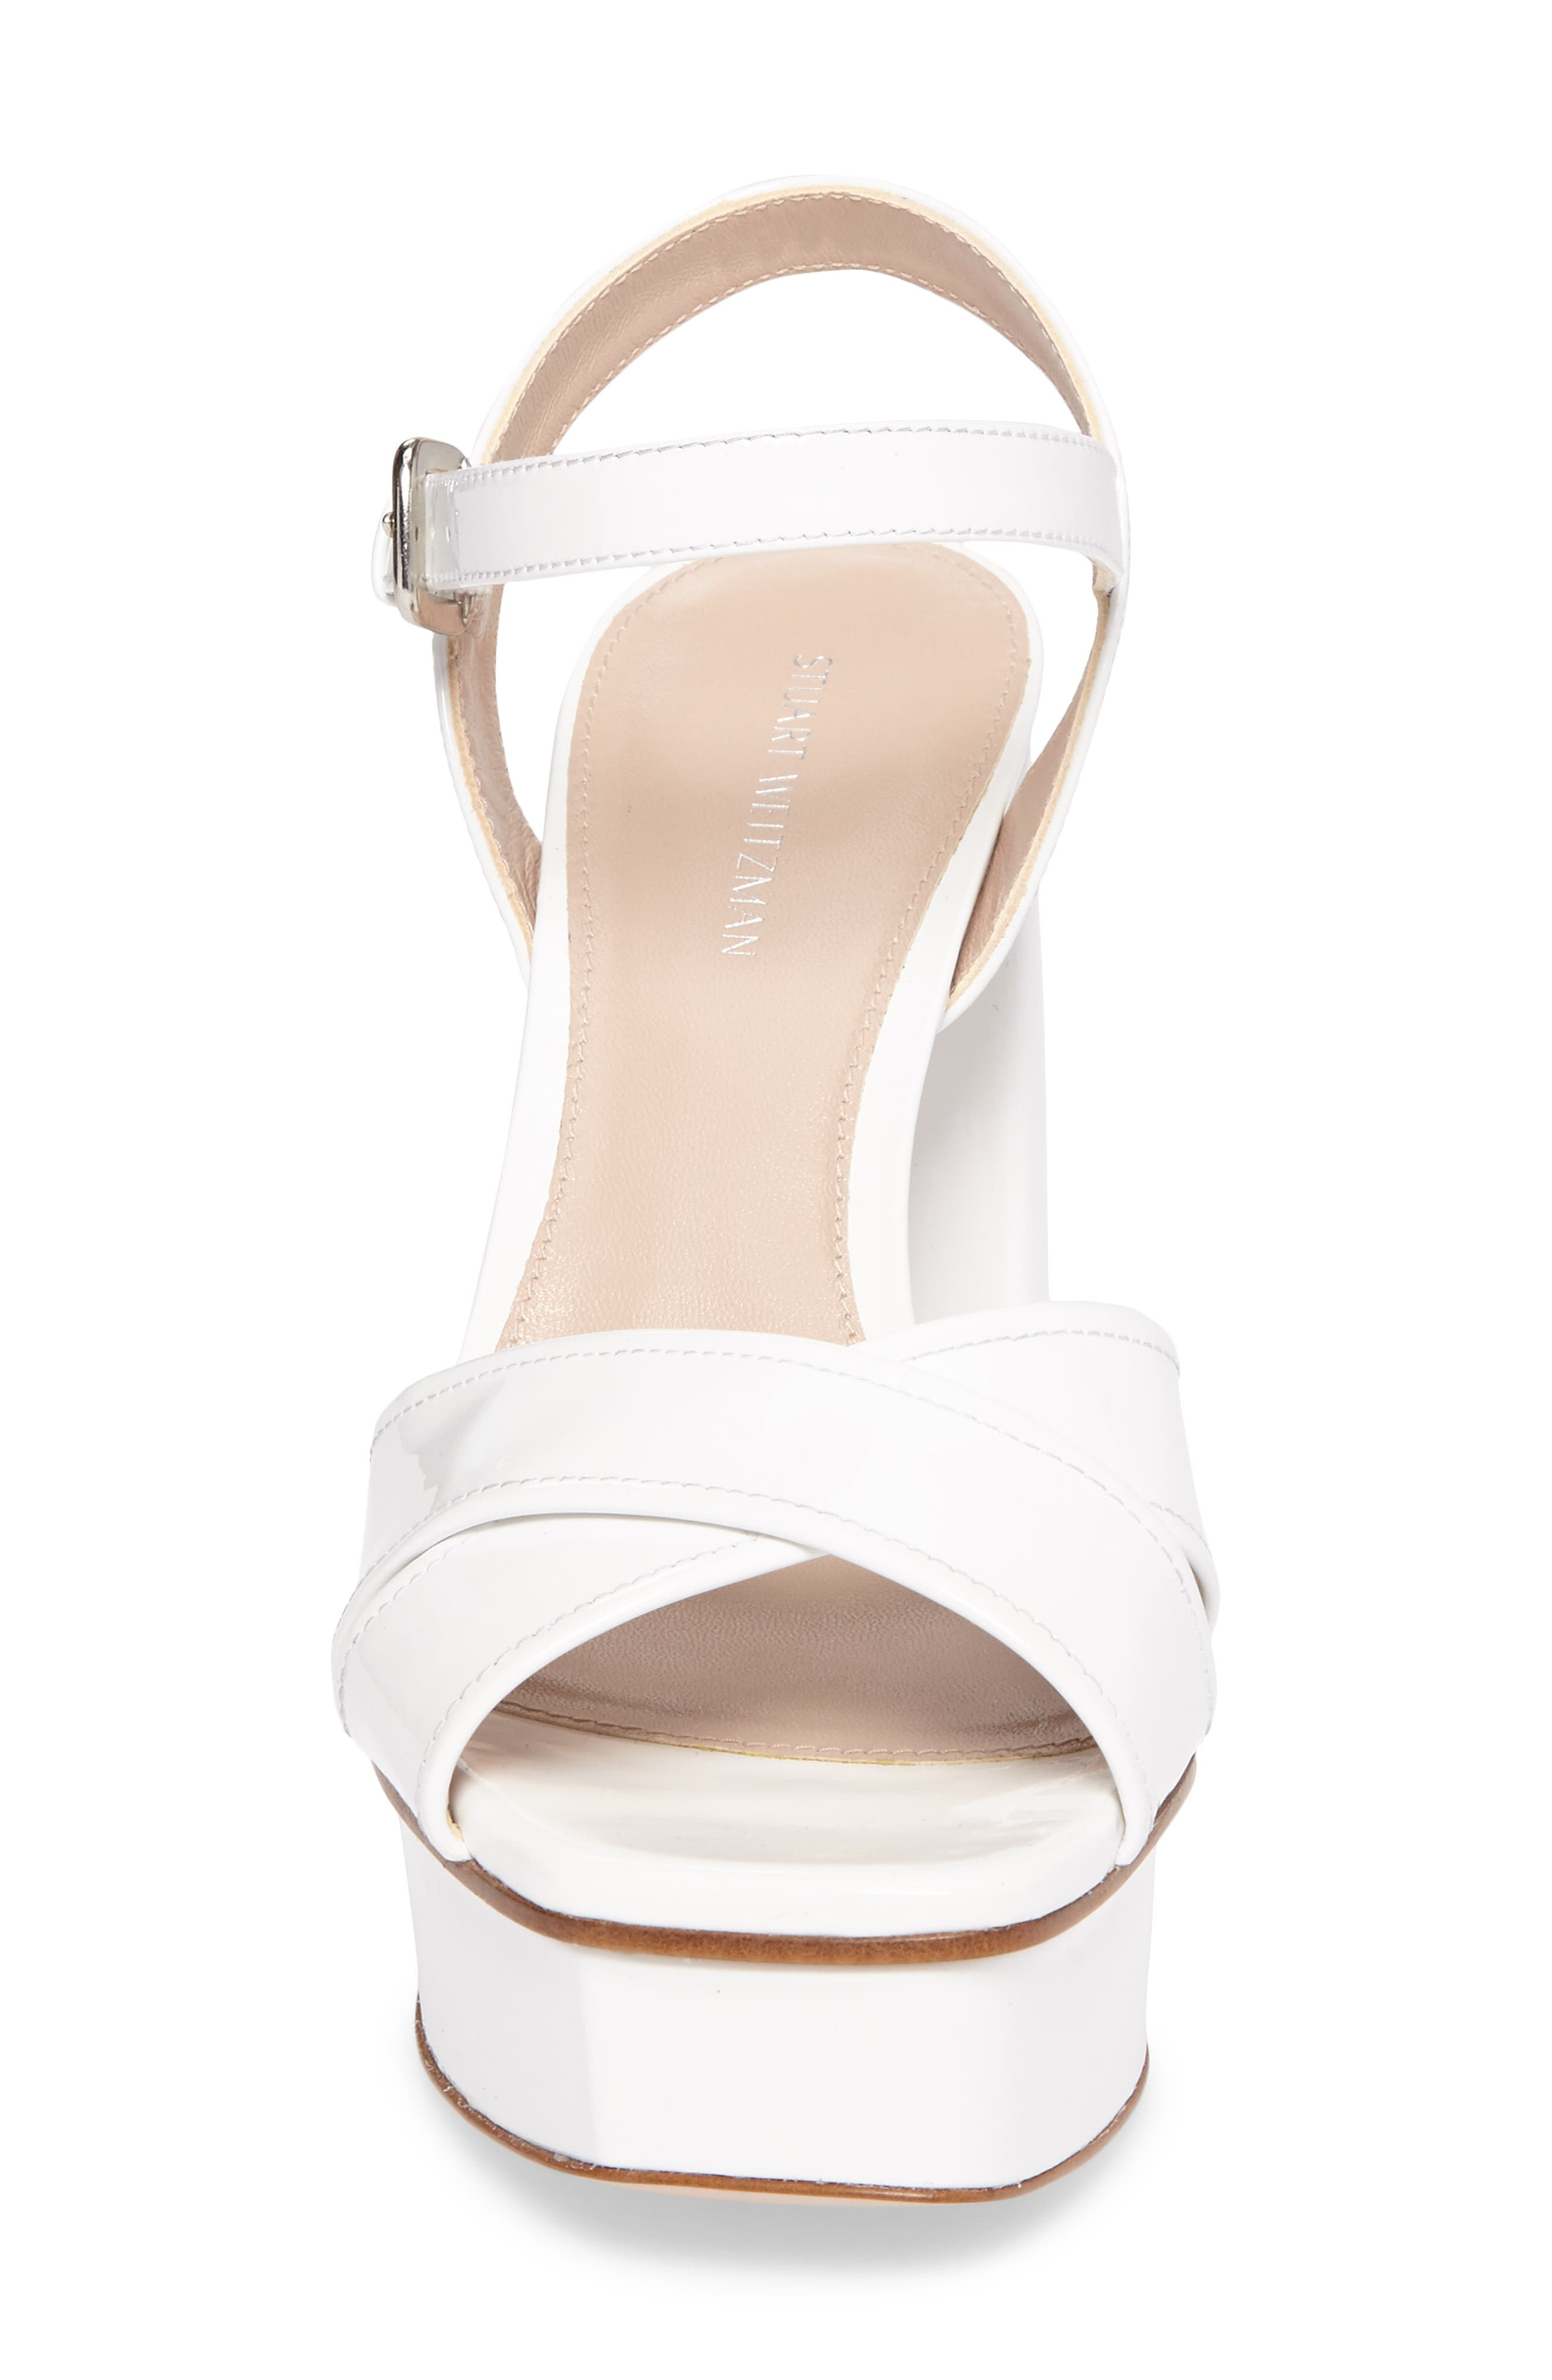 Exposed Platform Sandal,                             Alternate thumbnail 17, color,